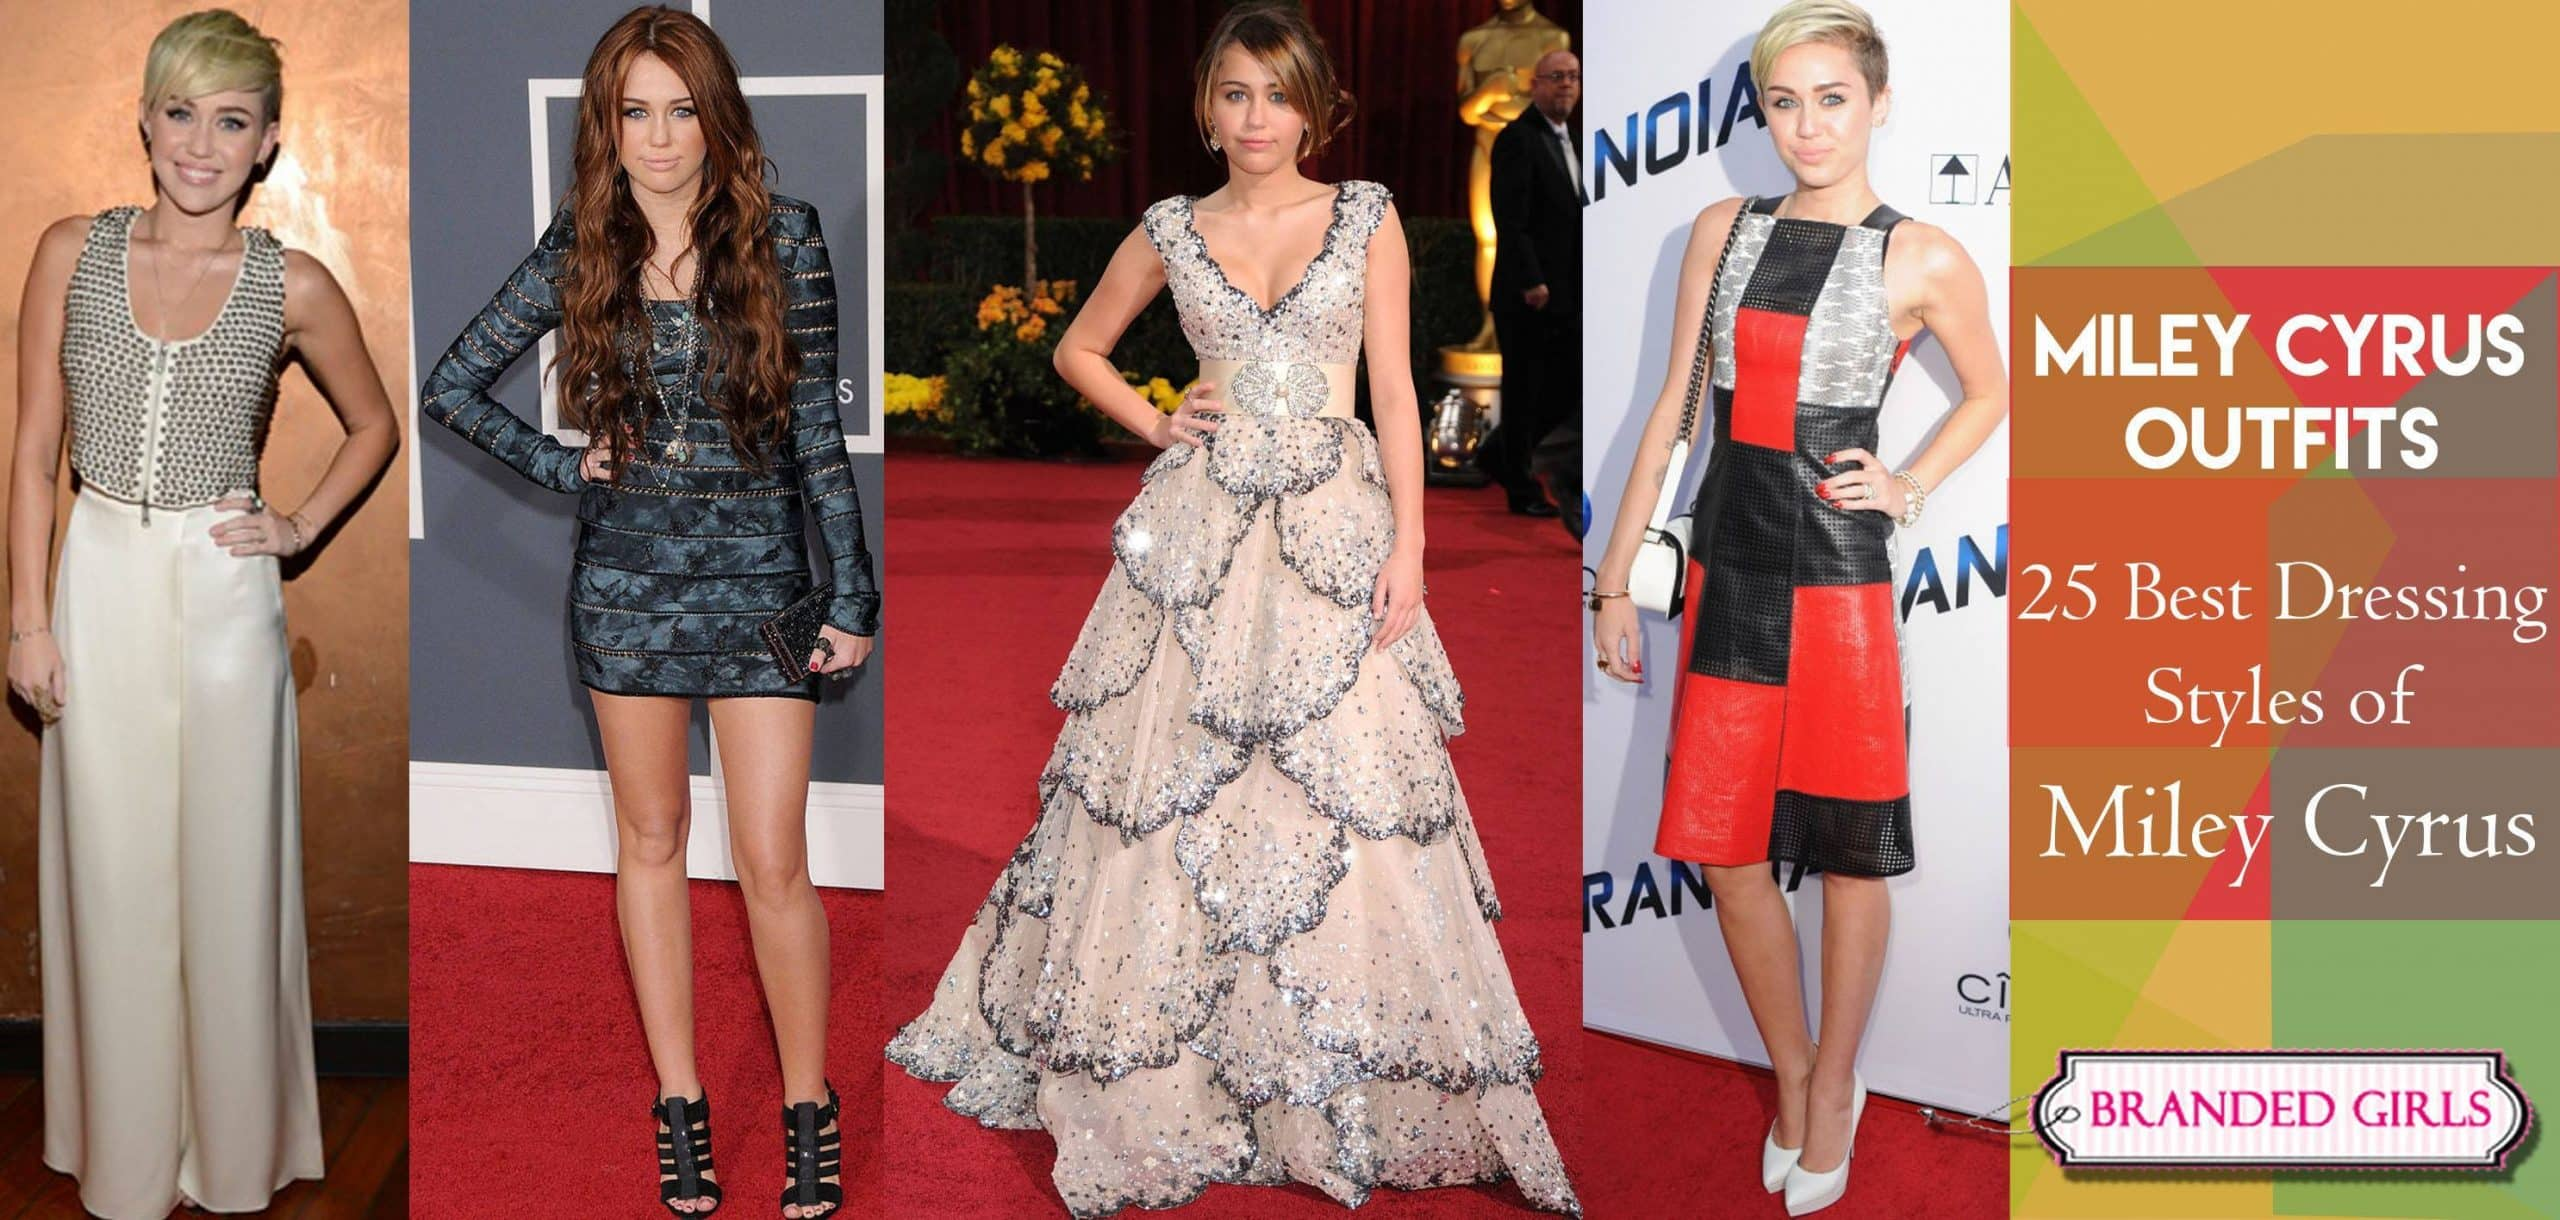 miley-cyrus-outfits-youll-love Miley Cyrus Outfits-25 Best Dressing Styles of Miley Cyrus to Copy